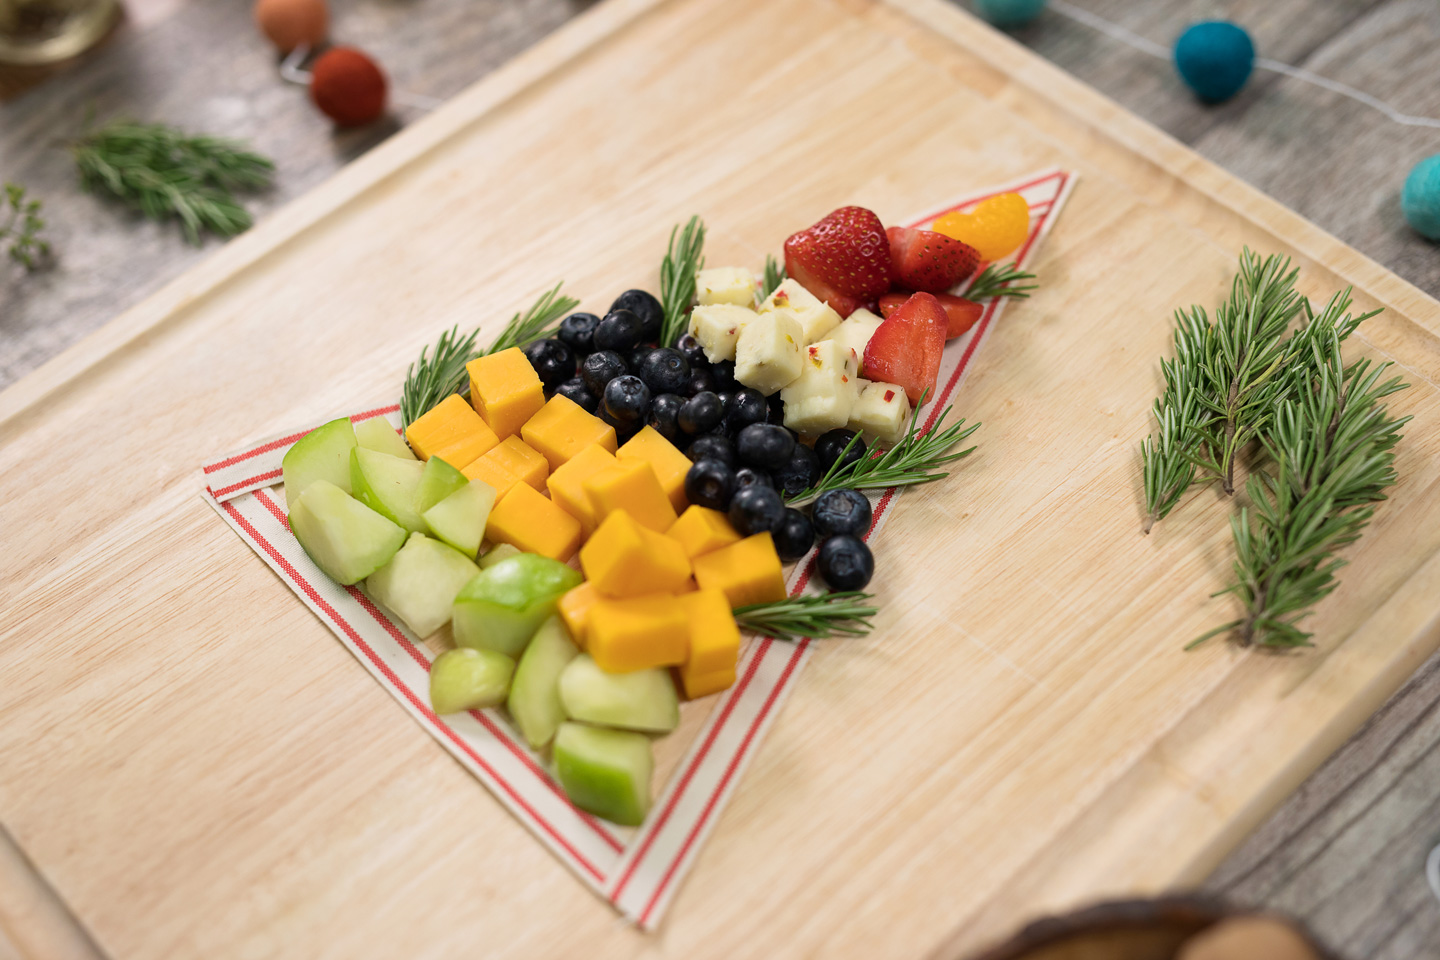 Christmas tree outlined on a board filled with cheese and fruit from a Chick-fil-A Fruit Tray garnished with rosemary.